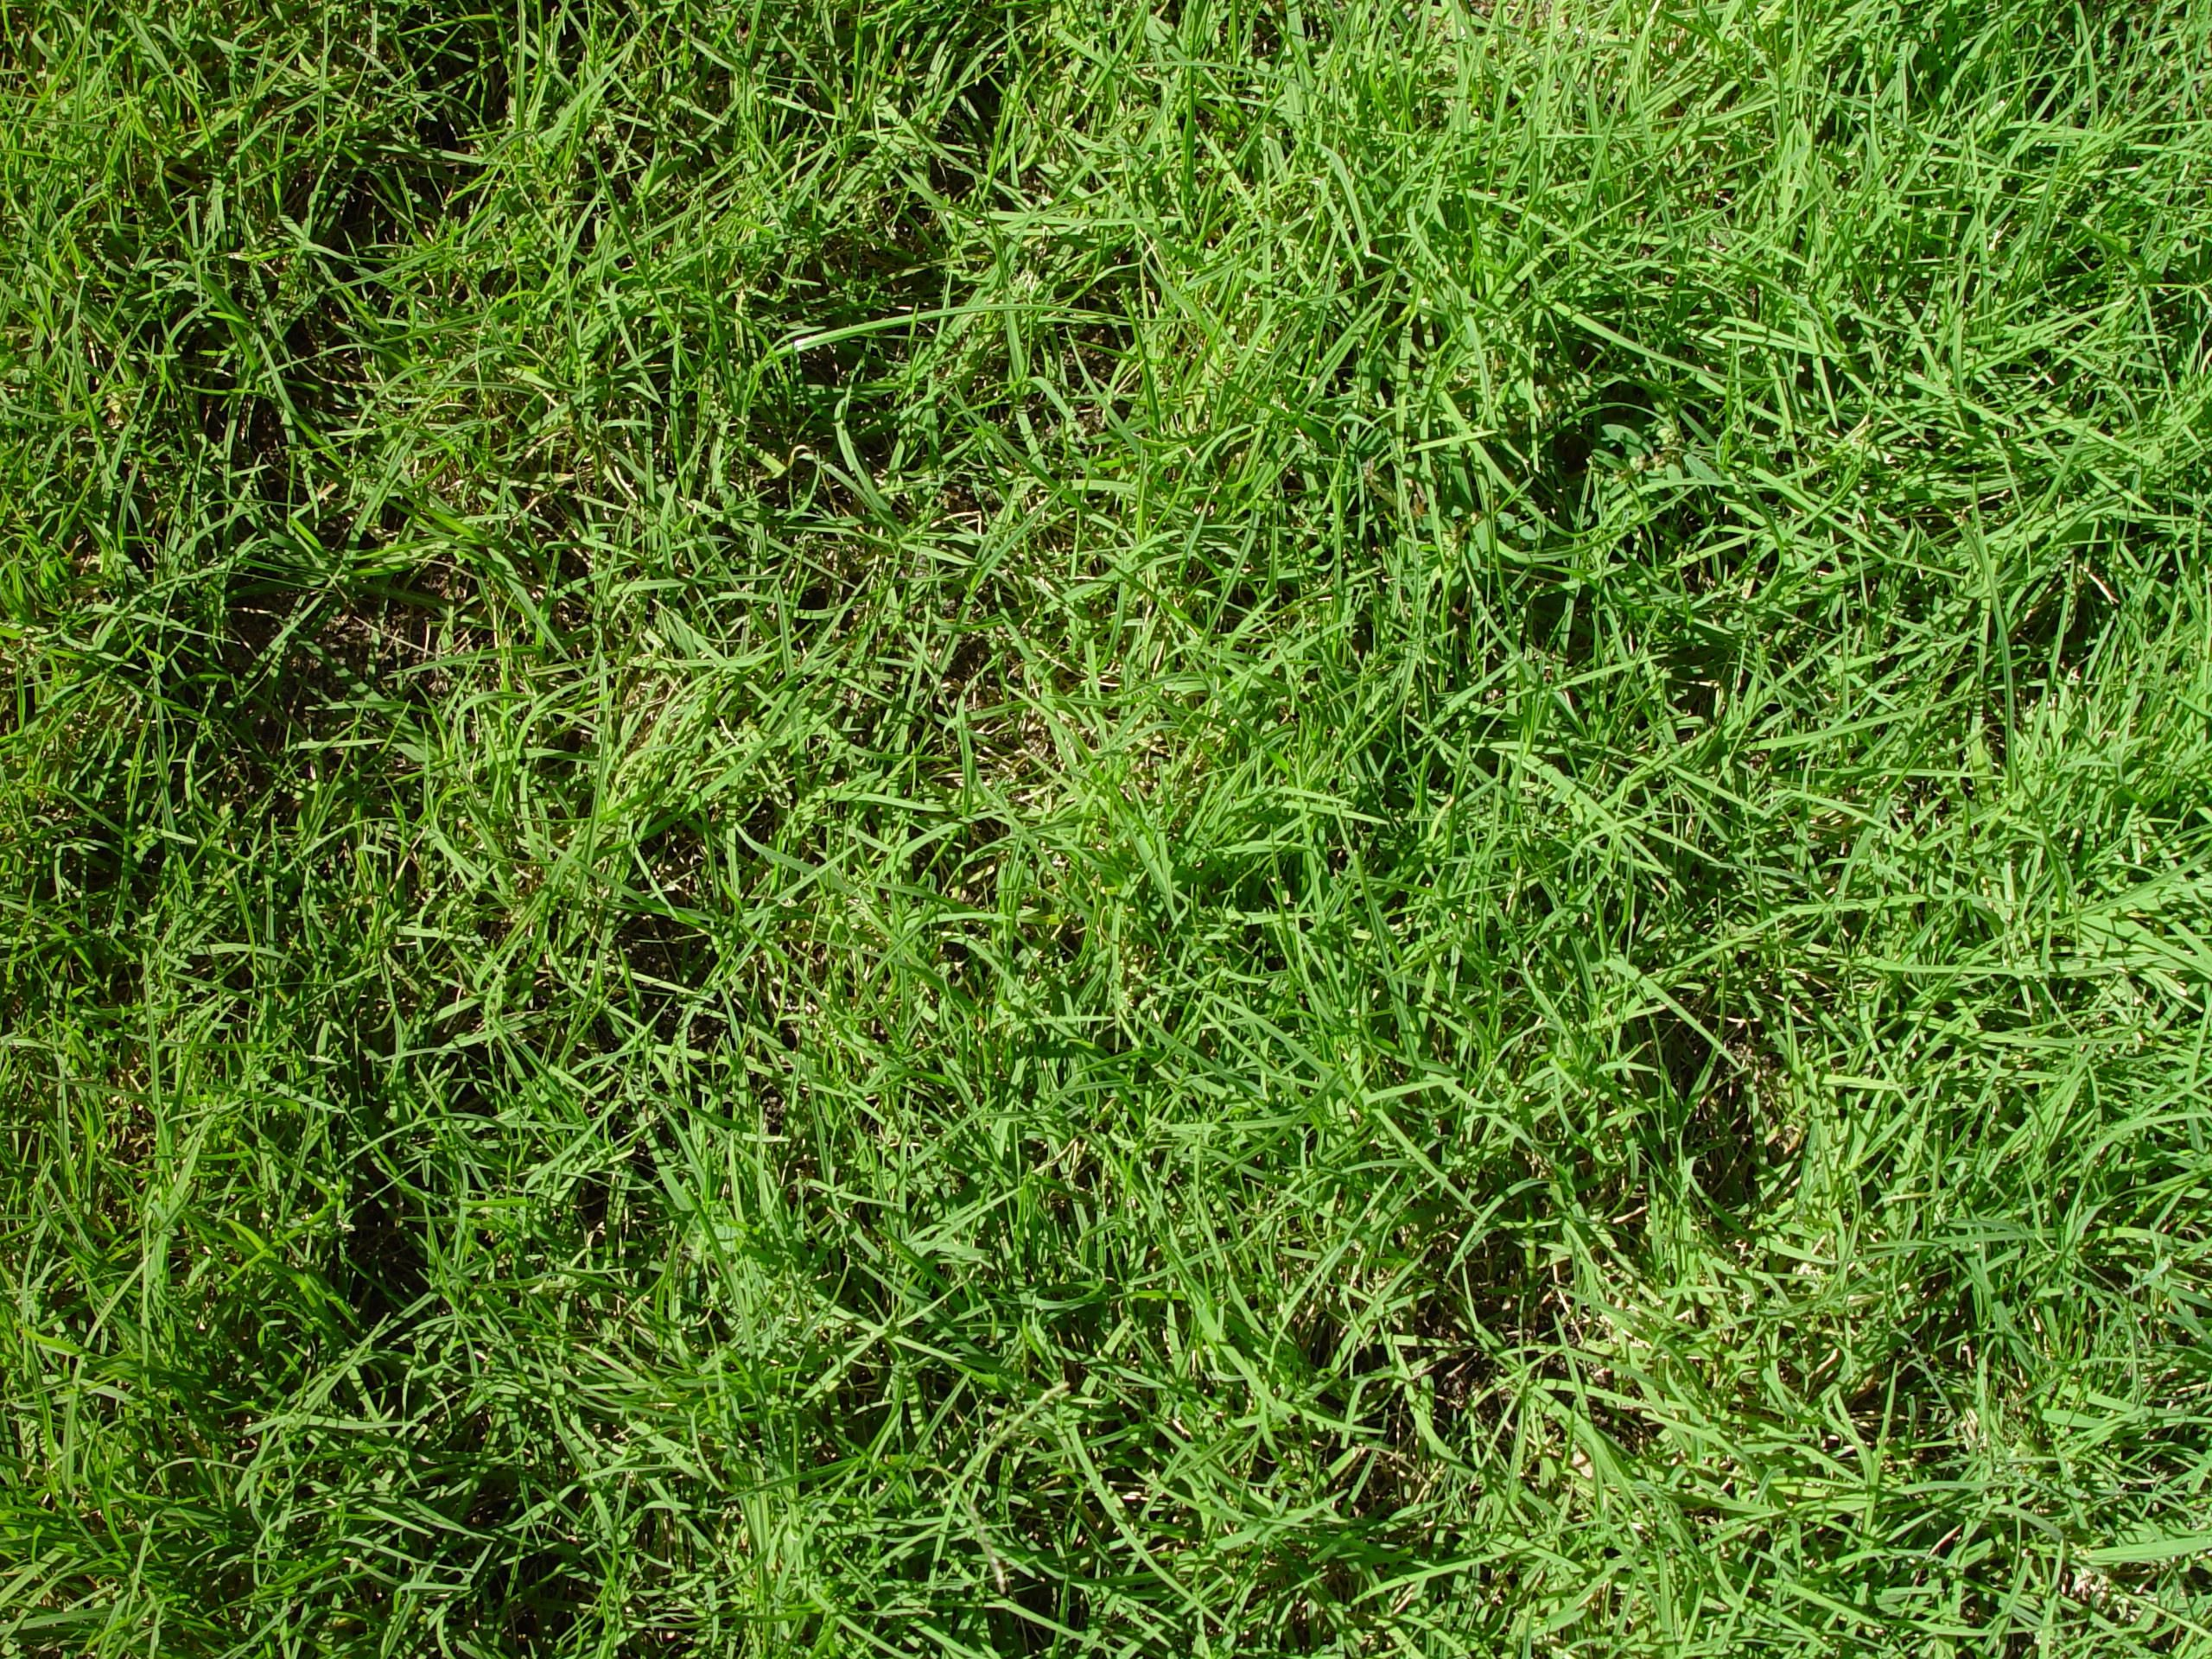 File:Cooch lawn texture.jpg - Wikimedia Commons